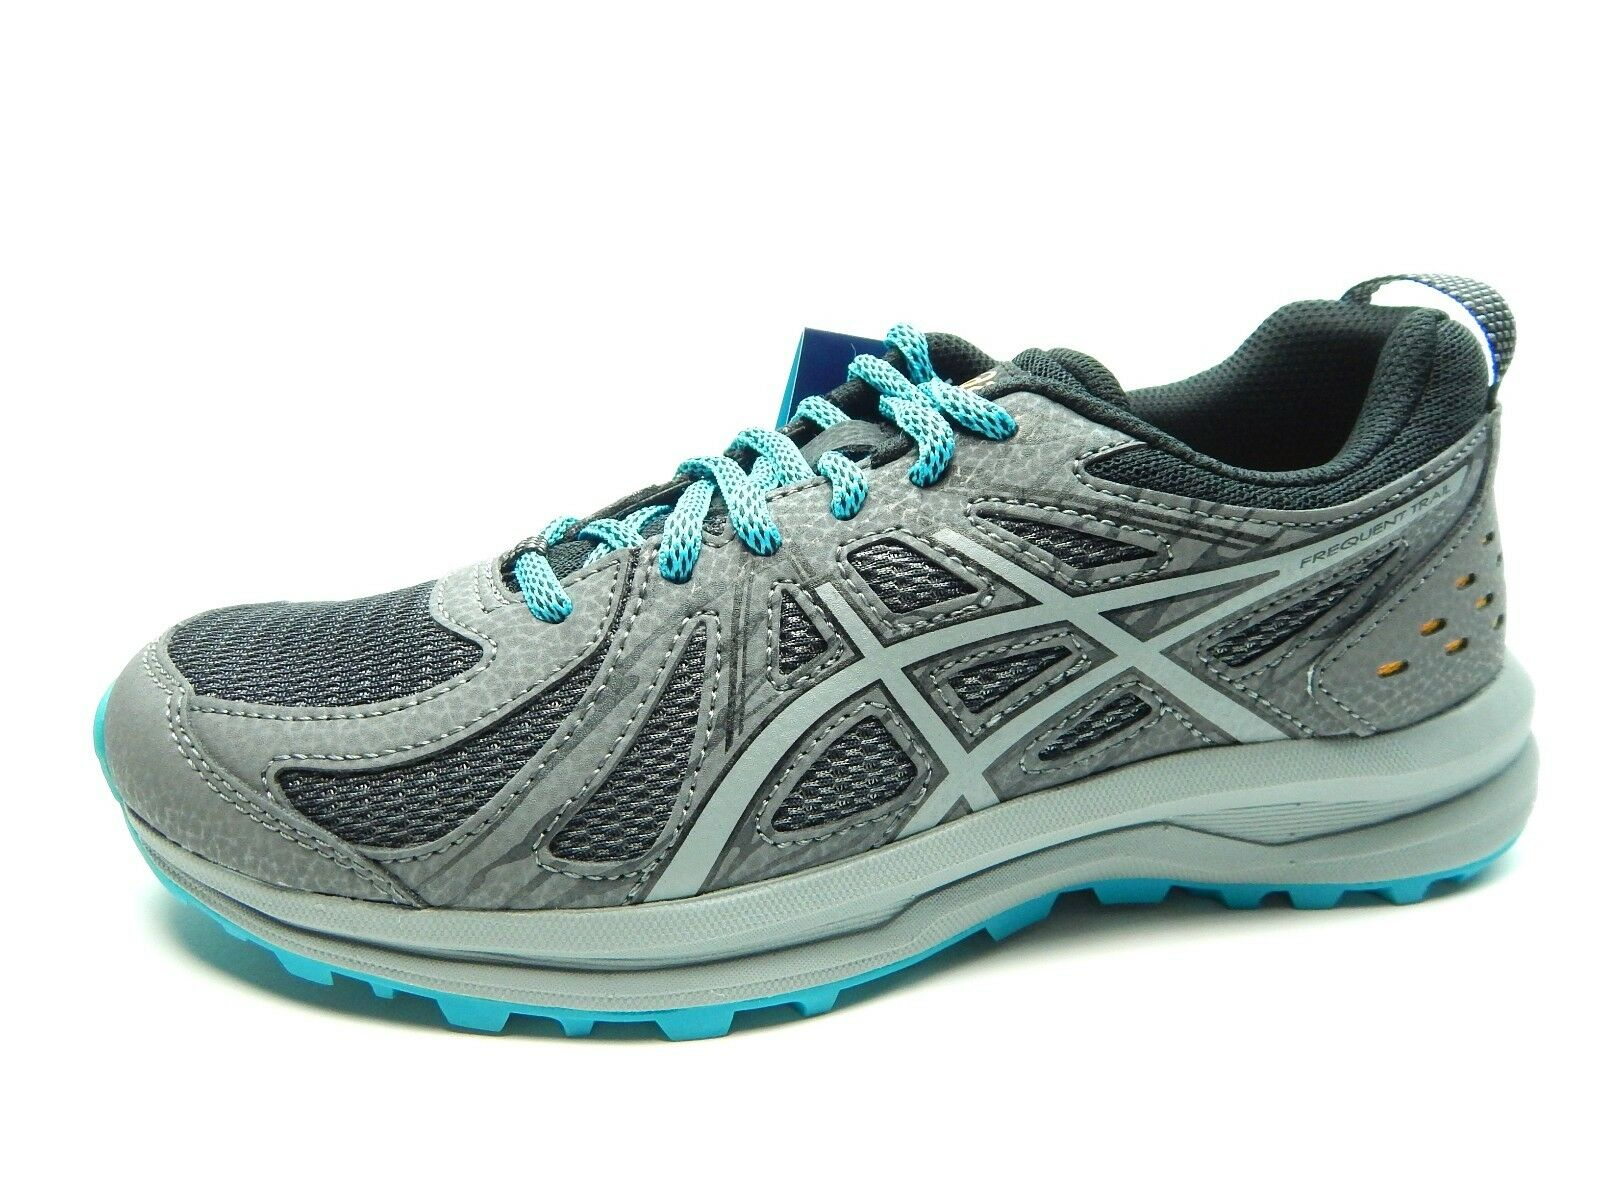 ASICS FREQUENT TRAIL CARBON STONE GREY WOMEN Schuhe SIZE 5.5 TO 9